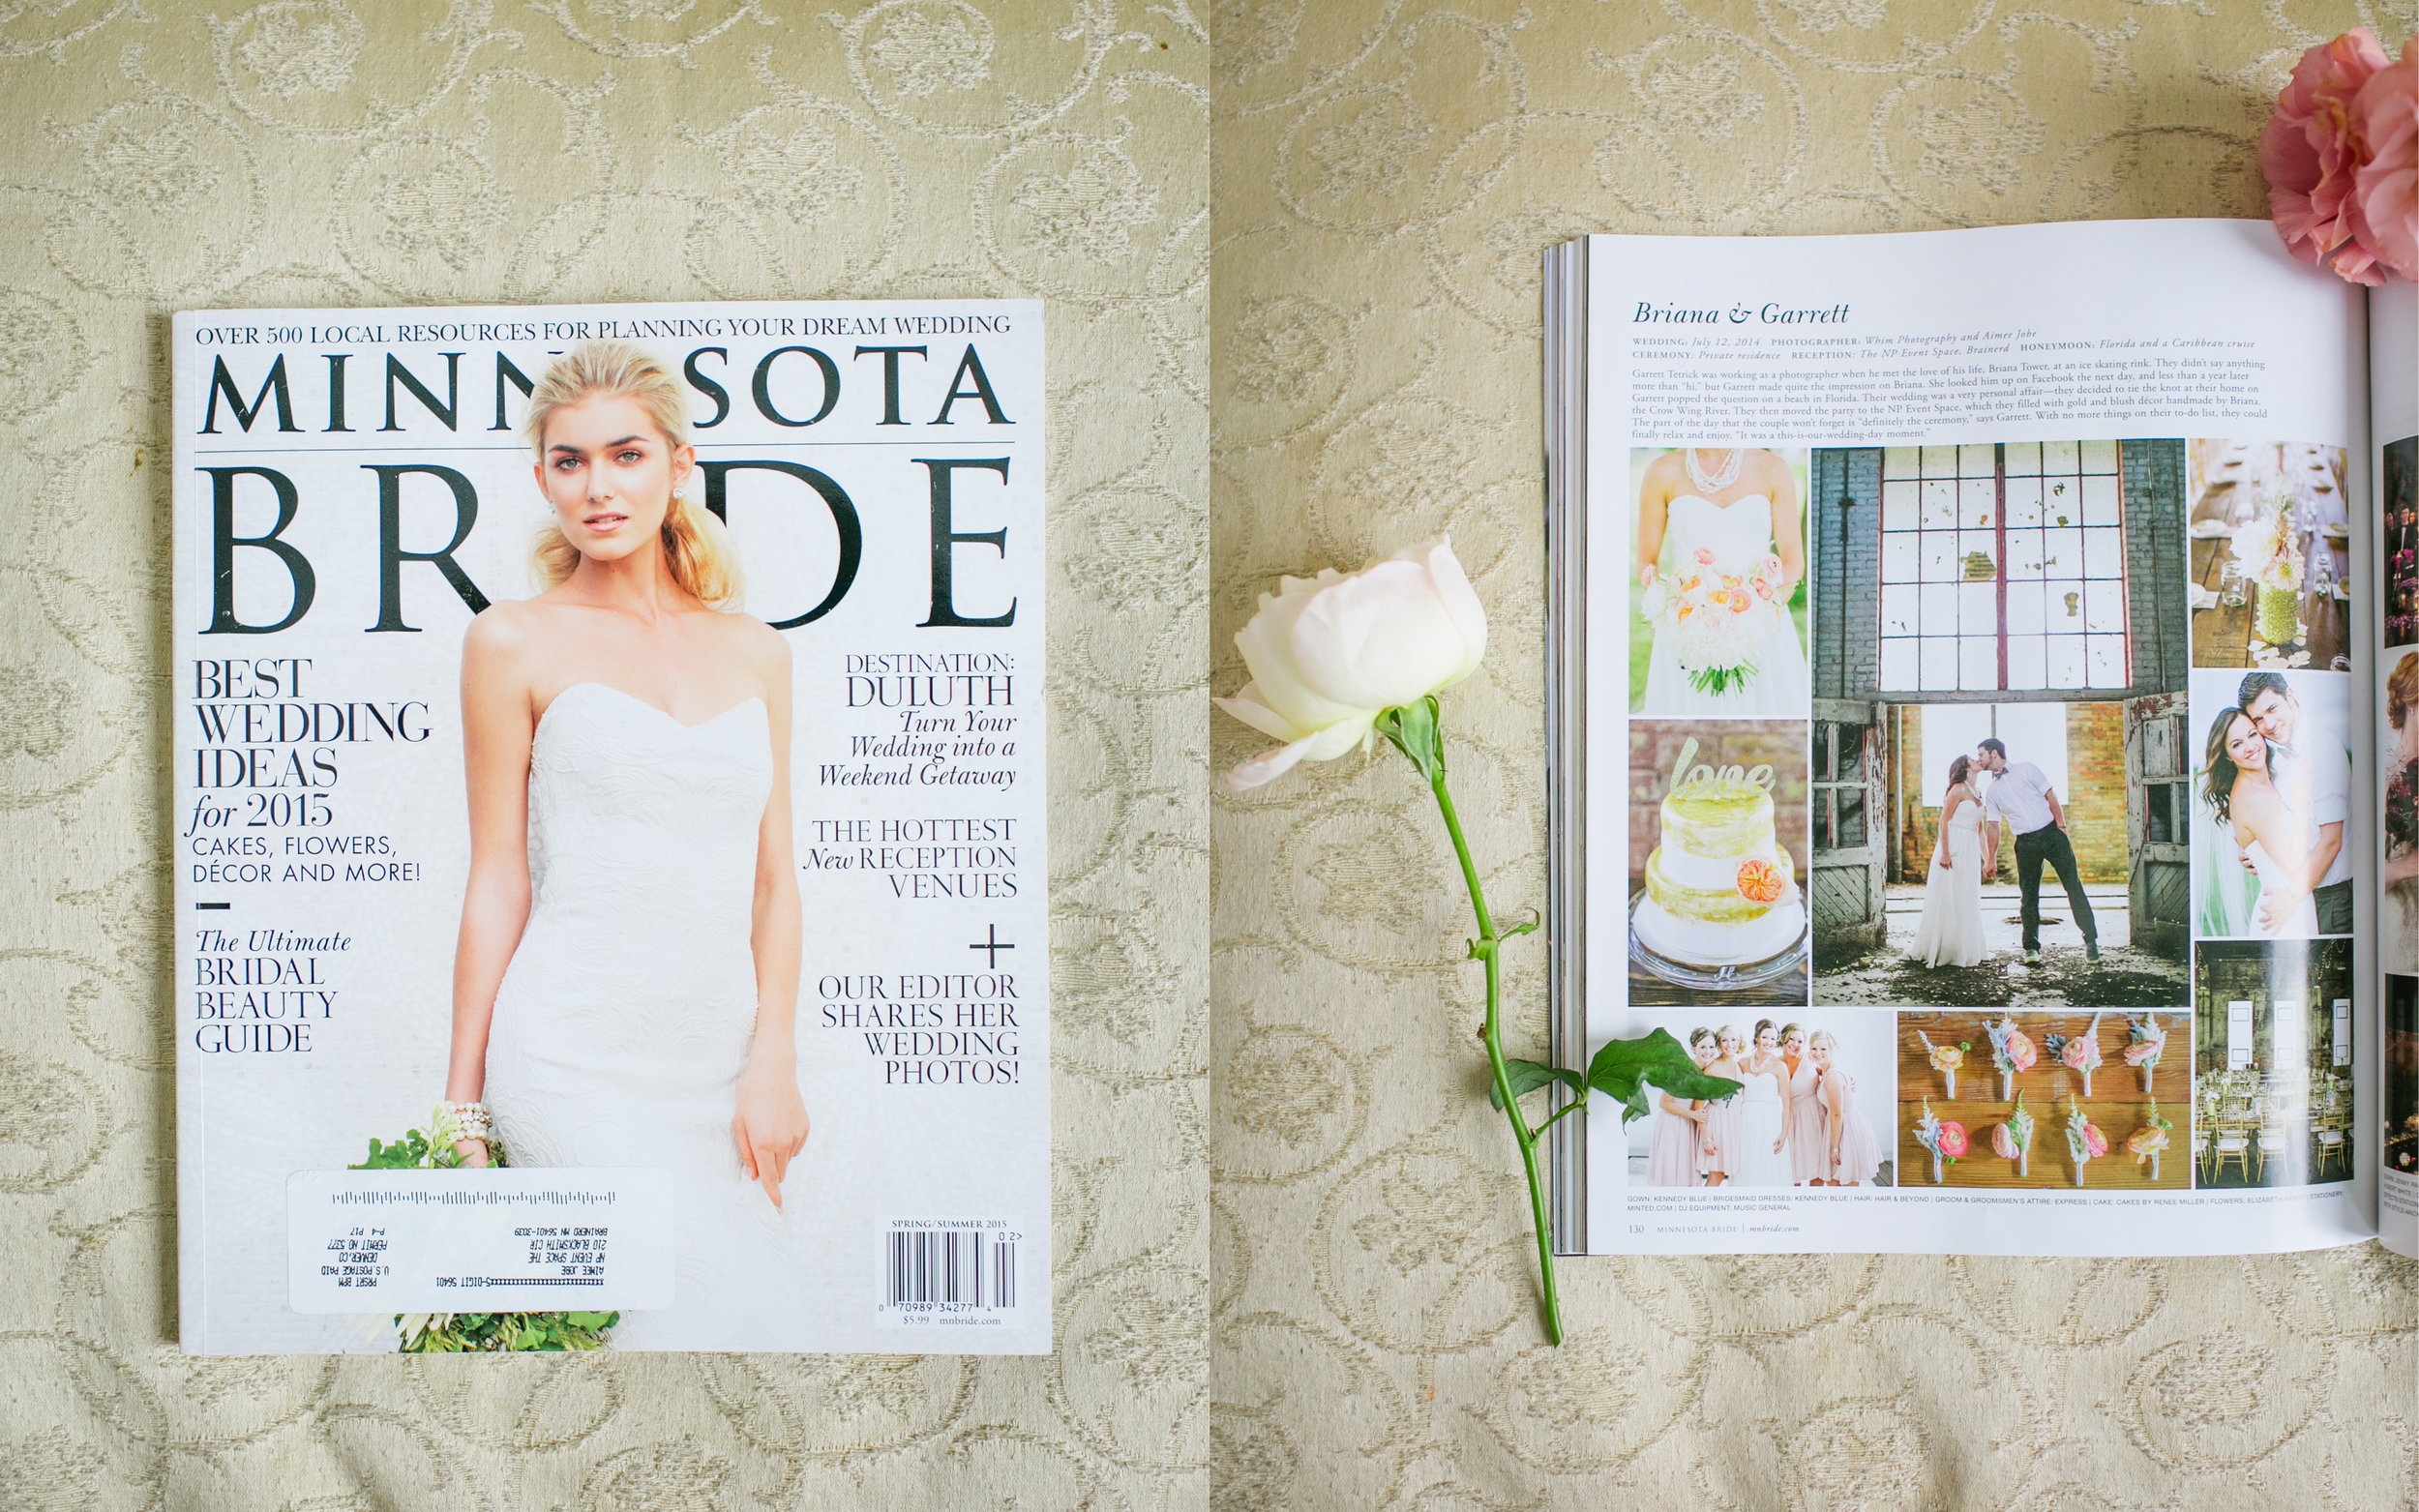 Briana and Garrett's real wedding was published in Minnesota Bride Magazine!!!